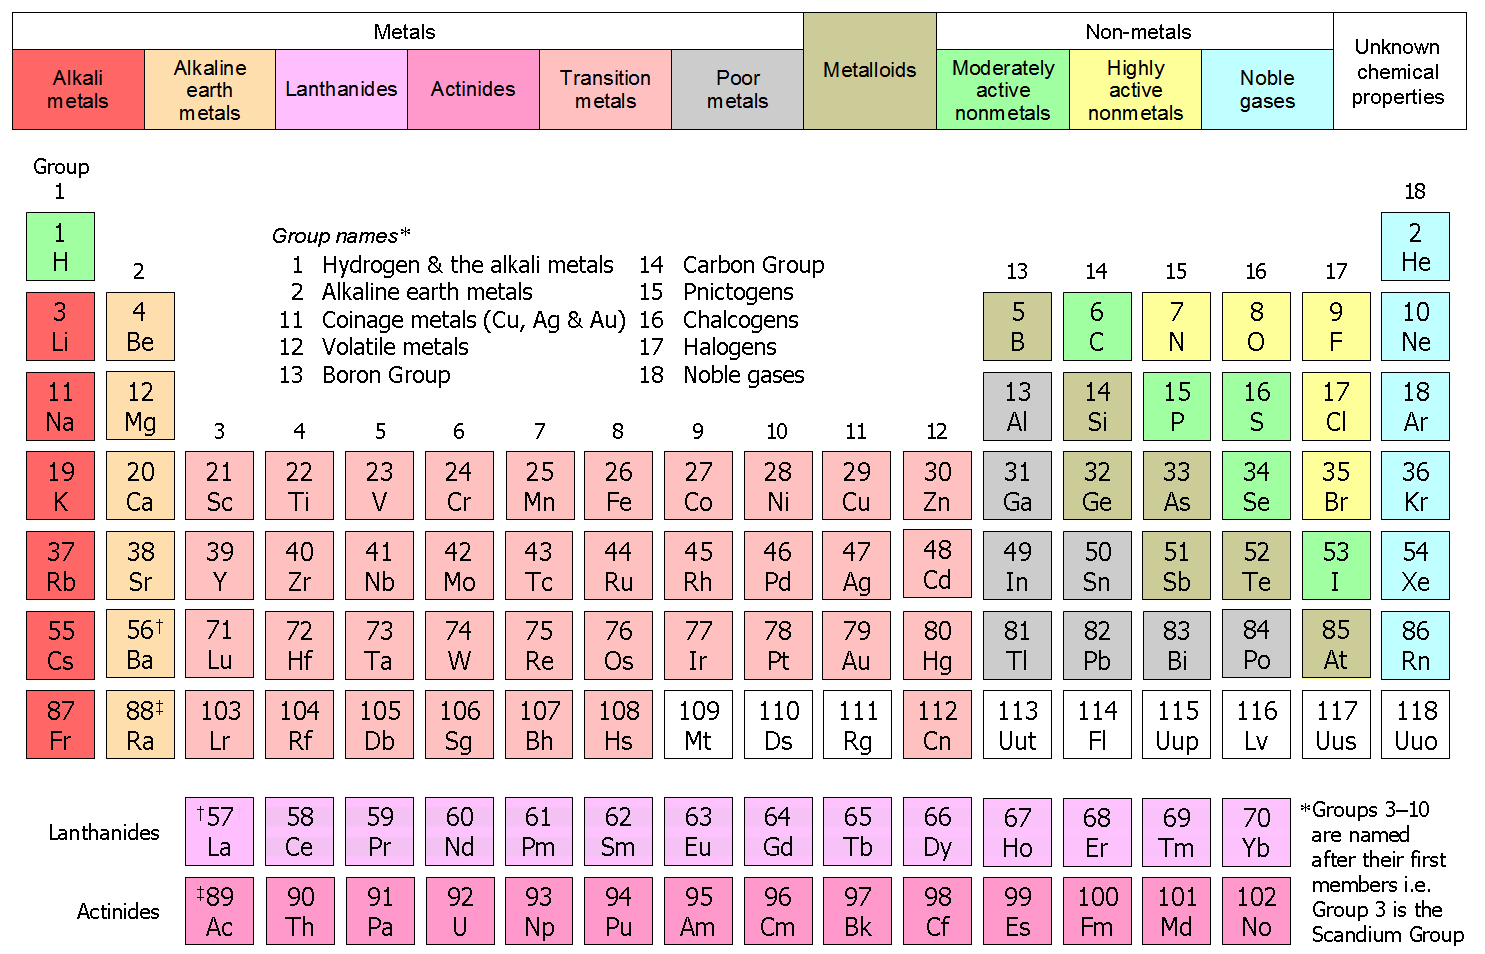 Structure of the modern periodic table chem in 10 online image httpsuploadmediawikipediacommons338r20g0 gamestrikefo Choice Image